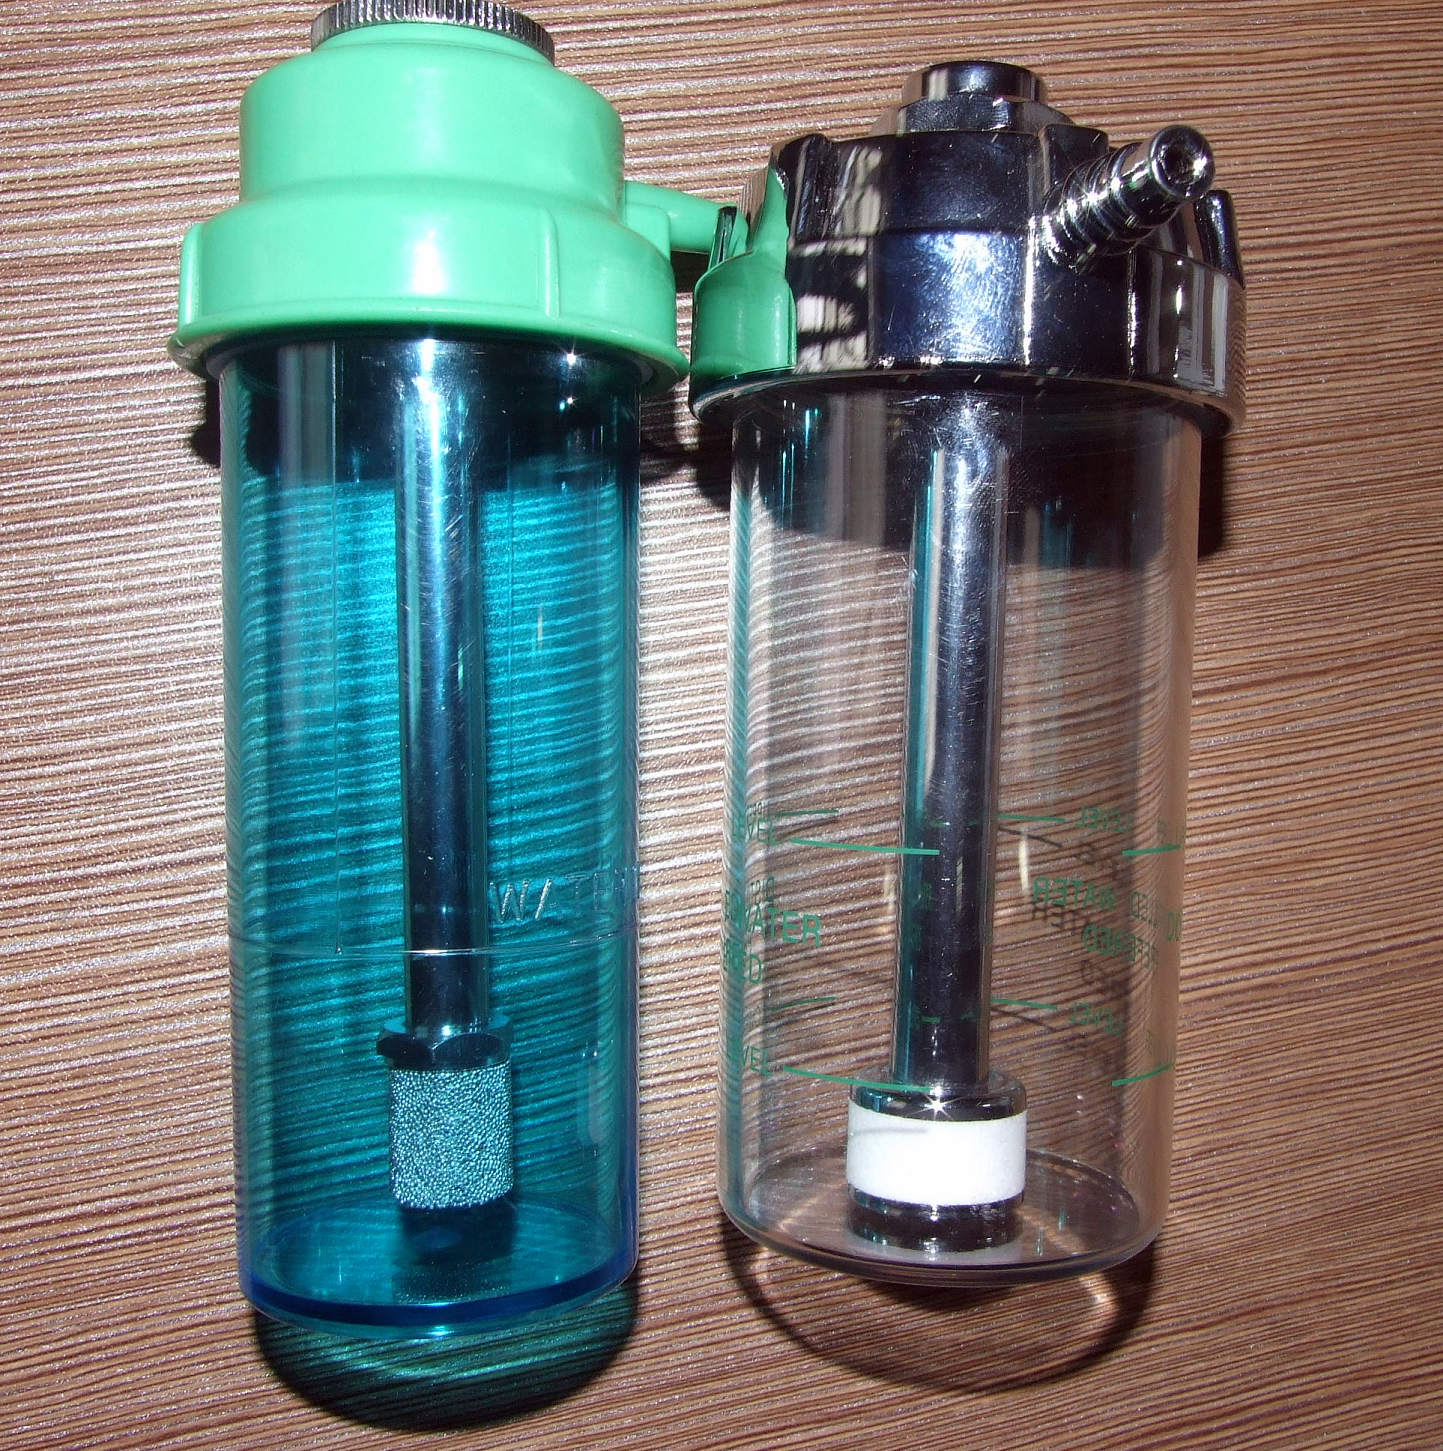 Medical Oxygen Bottle/Humidifier 170ML manufacturer from China Yuyao  #1BB08B